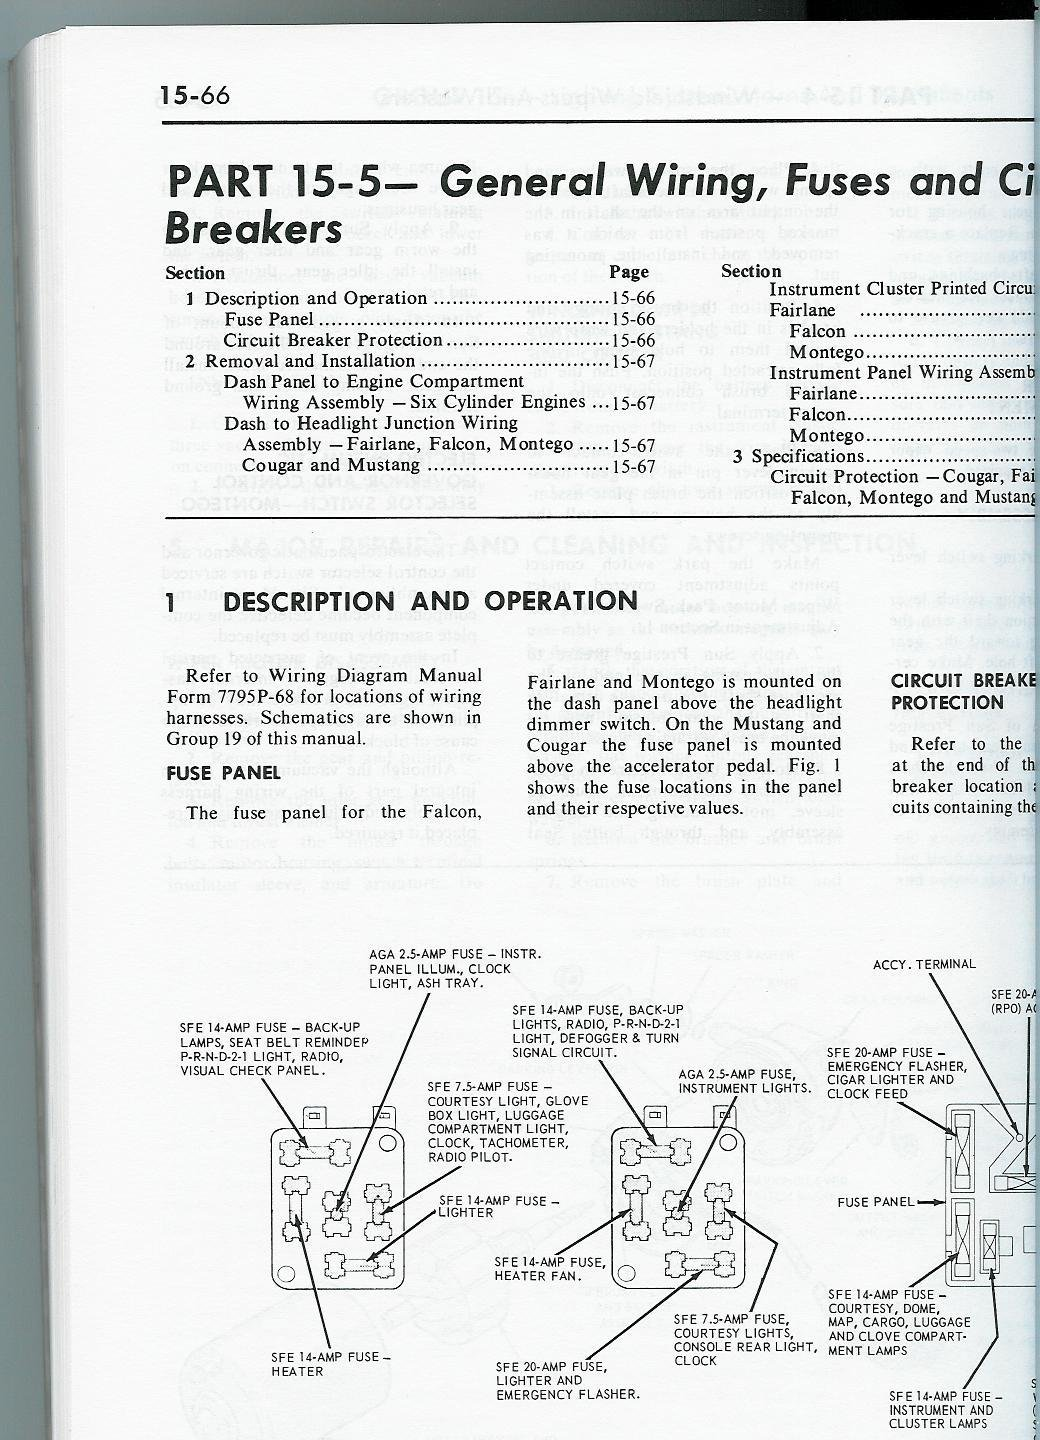 1968 mustang fuse box explained wiring diagrams rh sbsun co